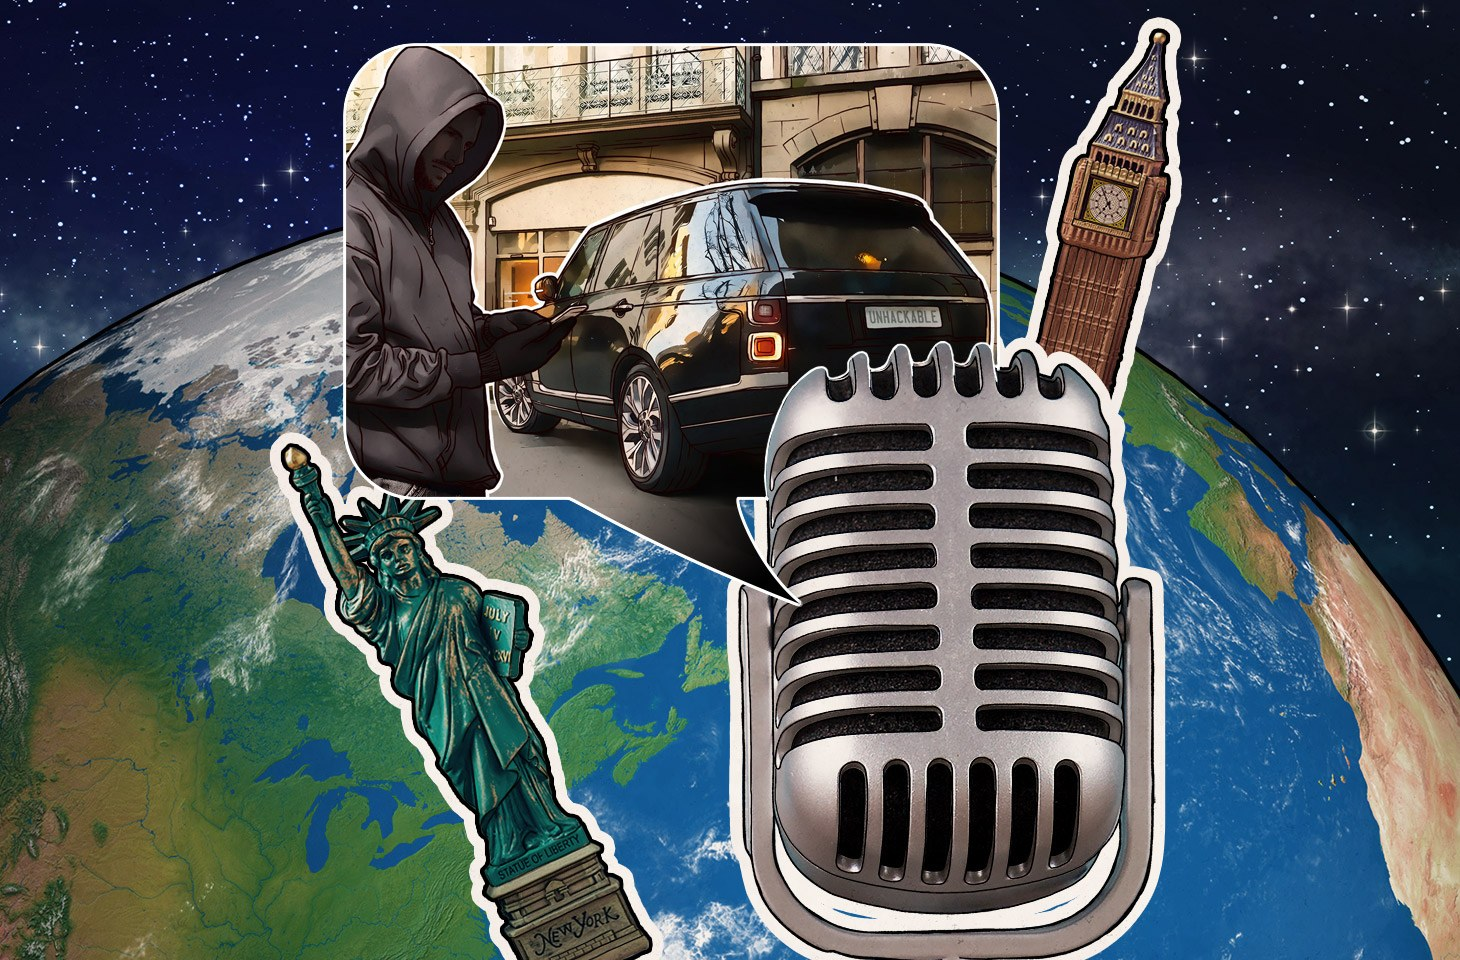 The latest edition of the Kaspersky Transatlantic Cable podcast includes stories about Amazon Alexa privacy concerns, a UK government BCC error, and hard-coded passwords on a smart-car app